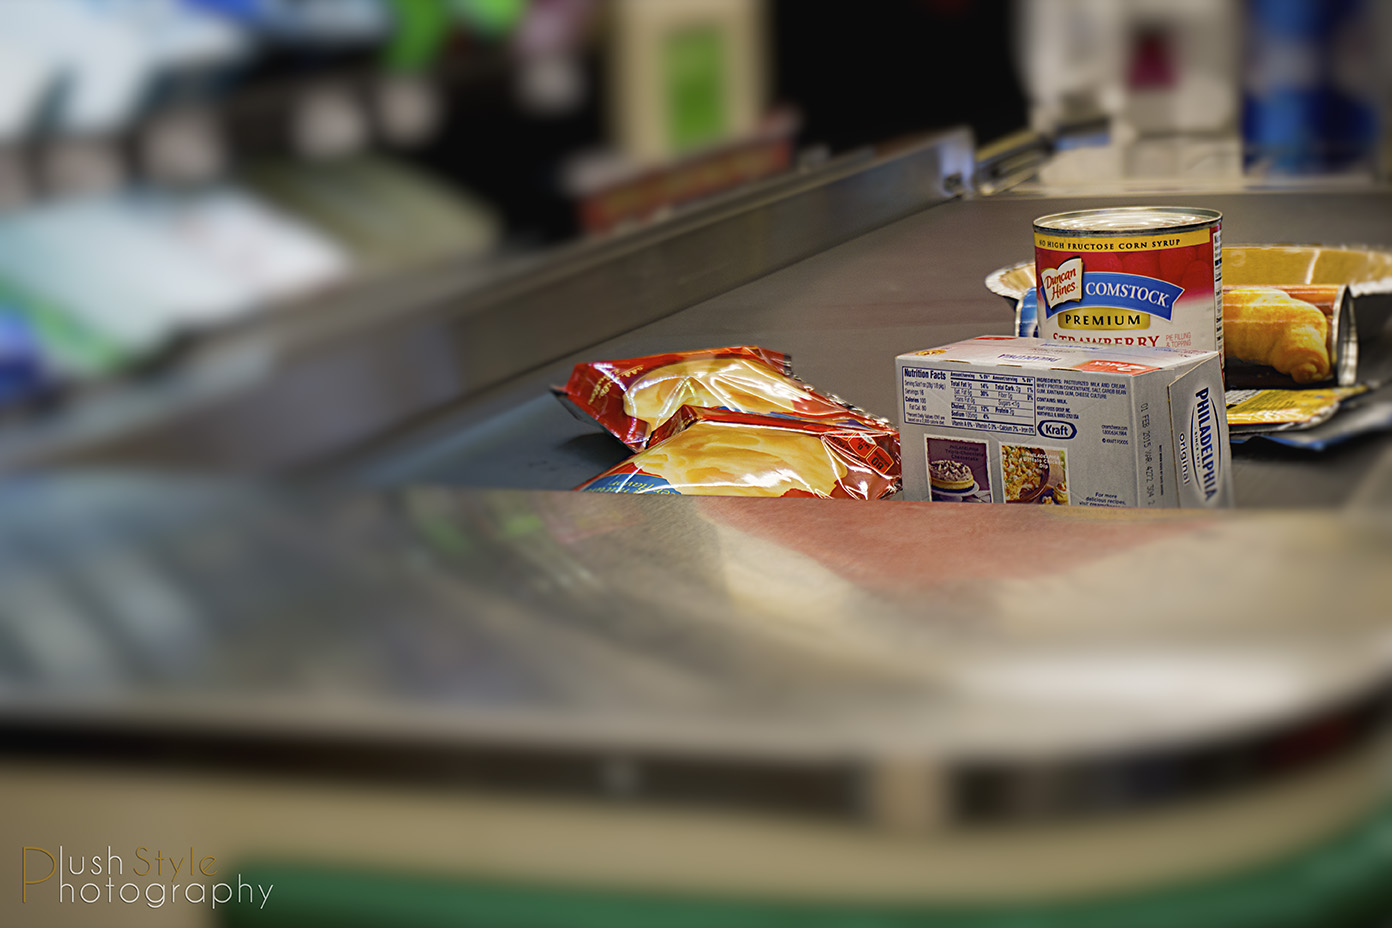 at the checkout image